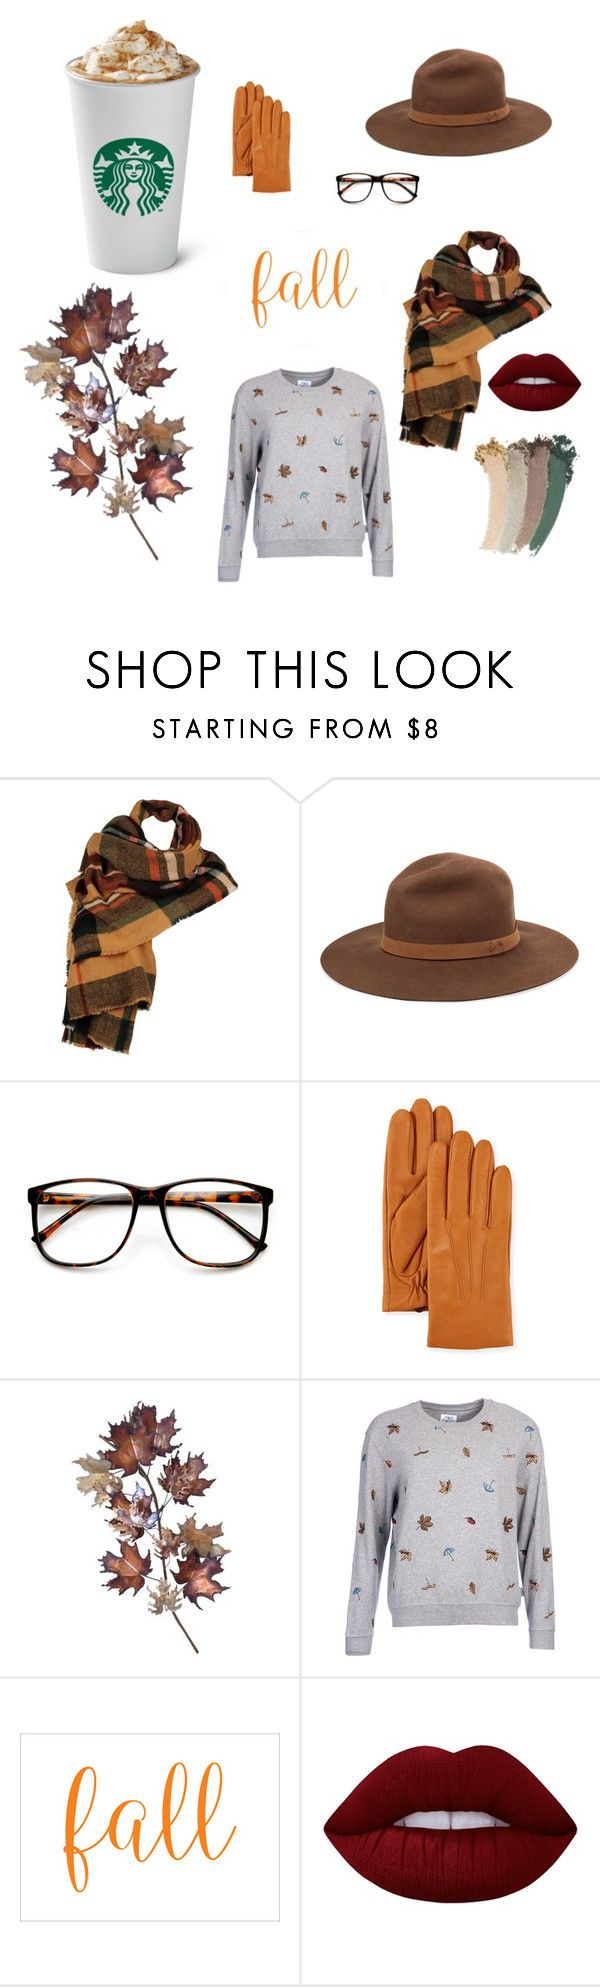 """Fall accessories"" by sweetlittlebunny on Polyvore featuring moda, Wilsons Leather, rag & bone, ZeroUV, UGG, C. Jeré, Barbour, Lime Crime i Gucci"